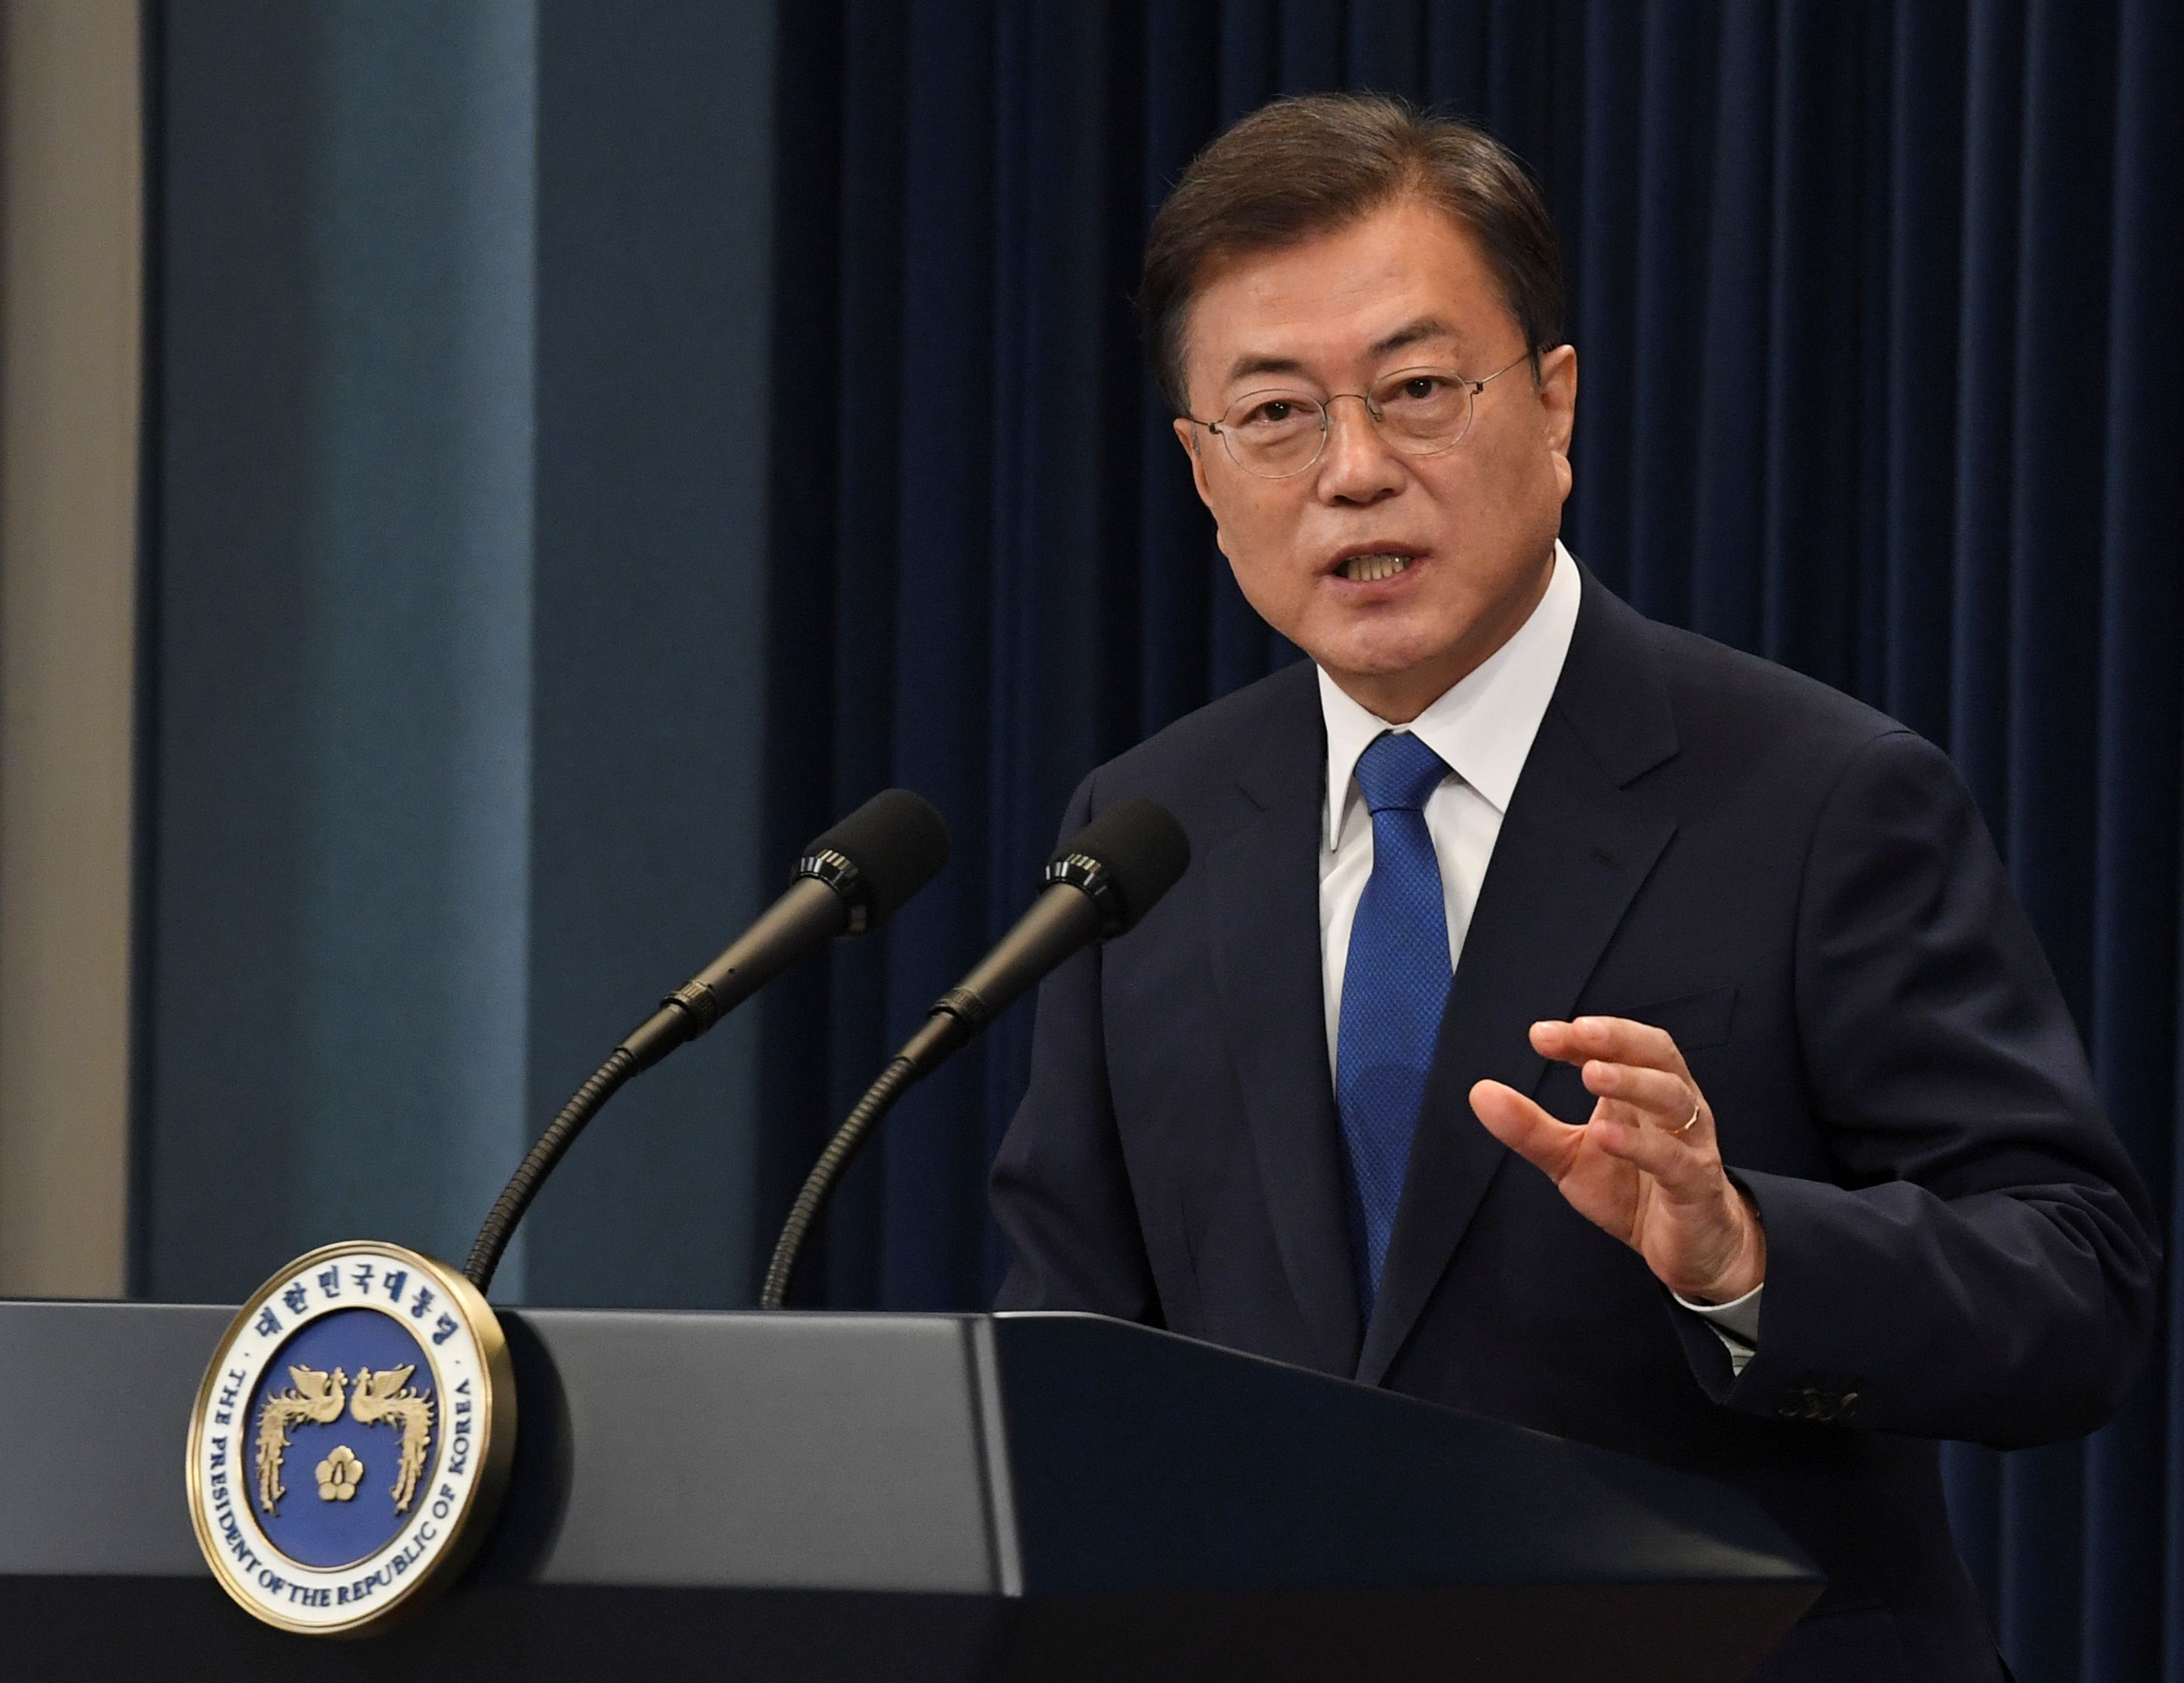 South Korean President Moon Jae-in speaks on the occasion of the third anniversary of his inauguration at the presidential Blue House in Seoul, South Korea, May 10, 2020. Kim Min-Hee/Pool via REUTERS